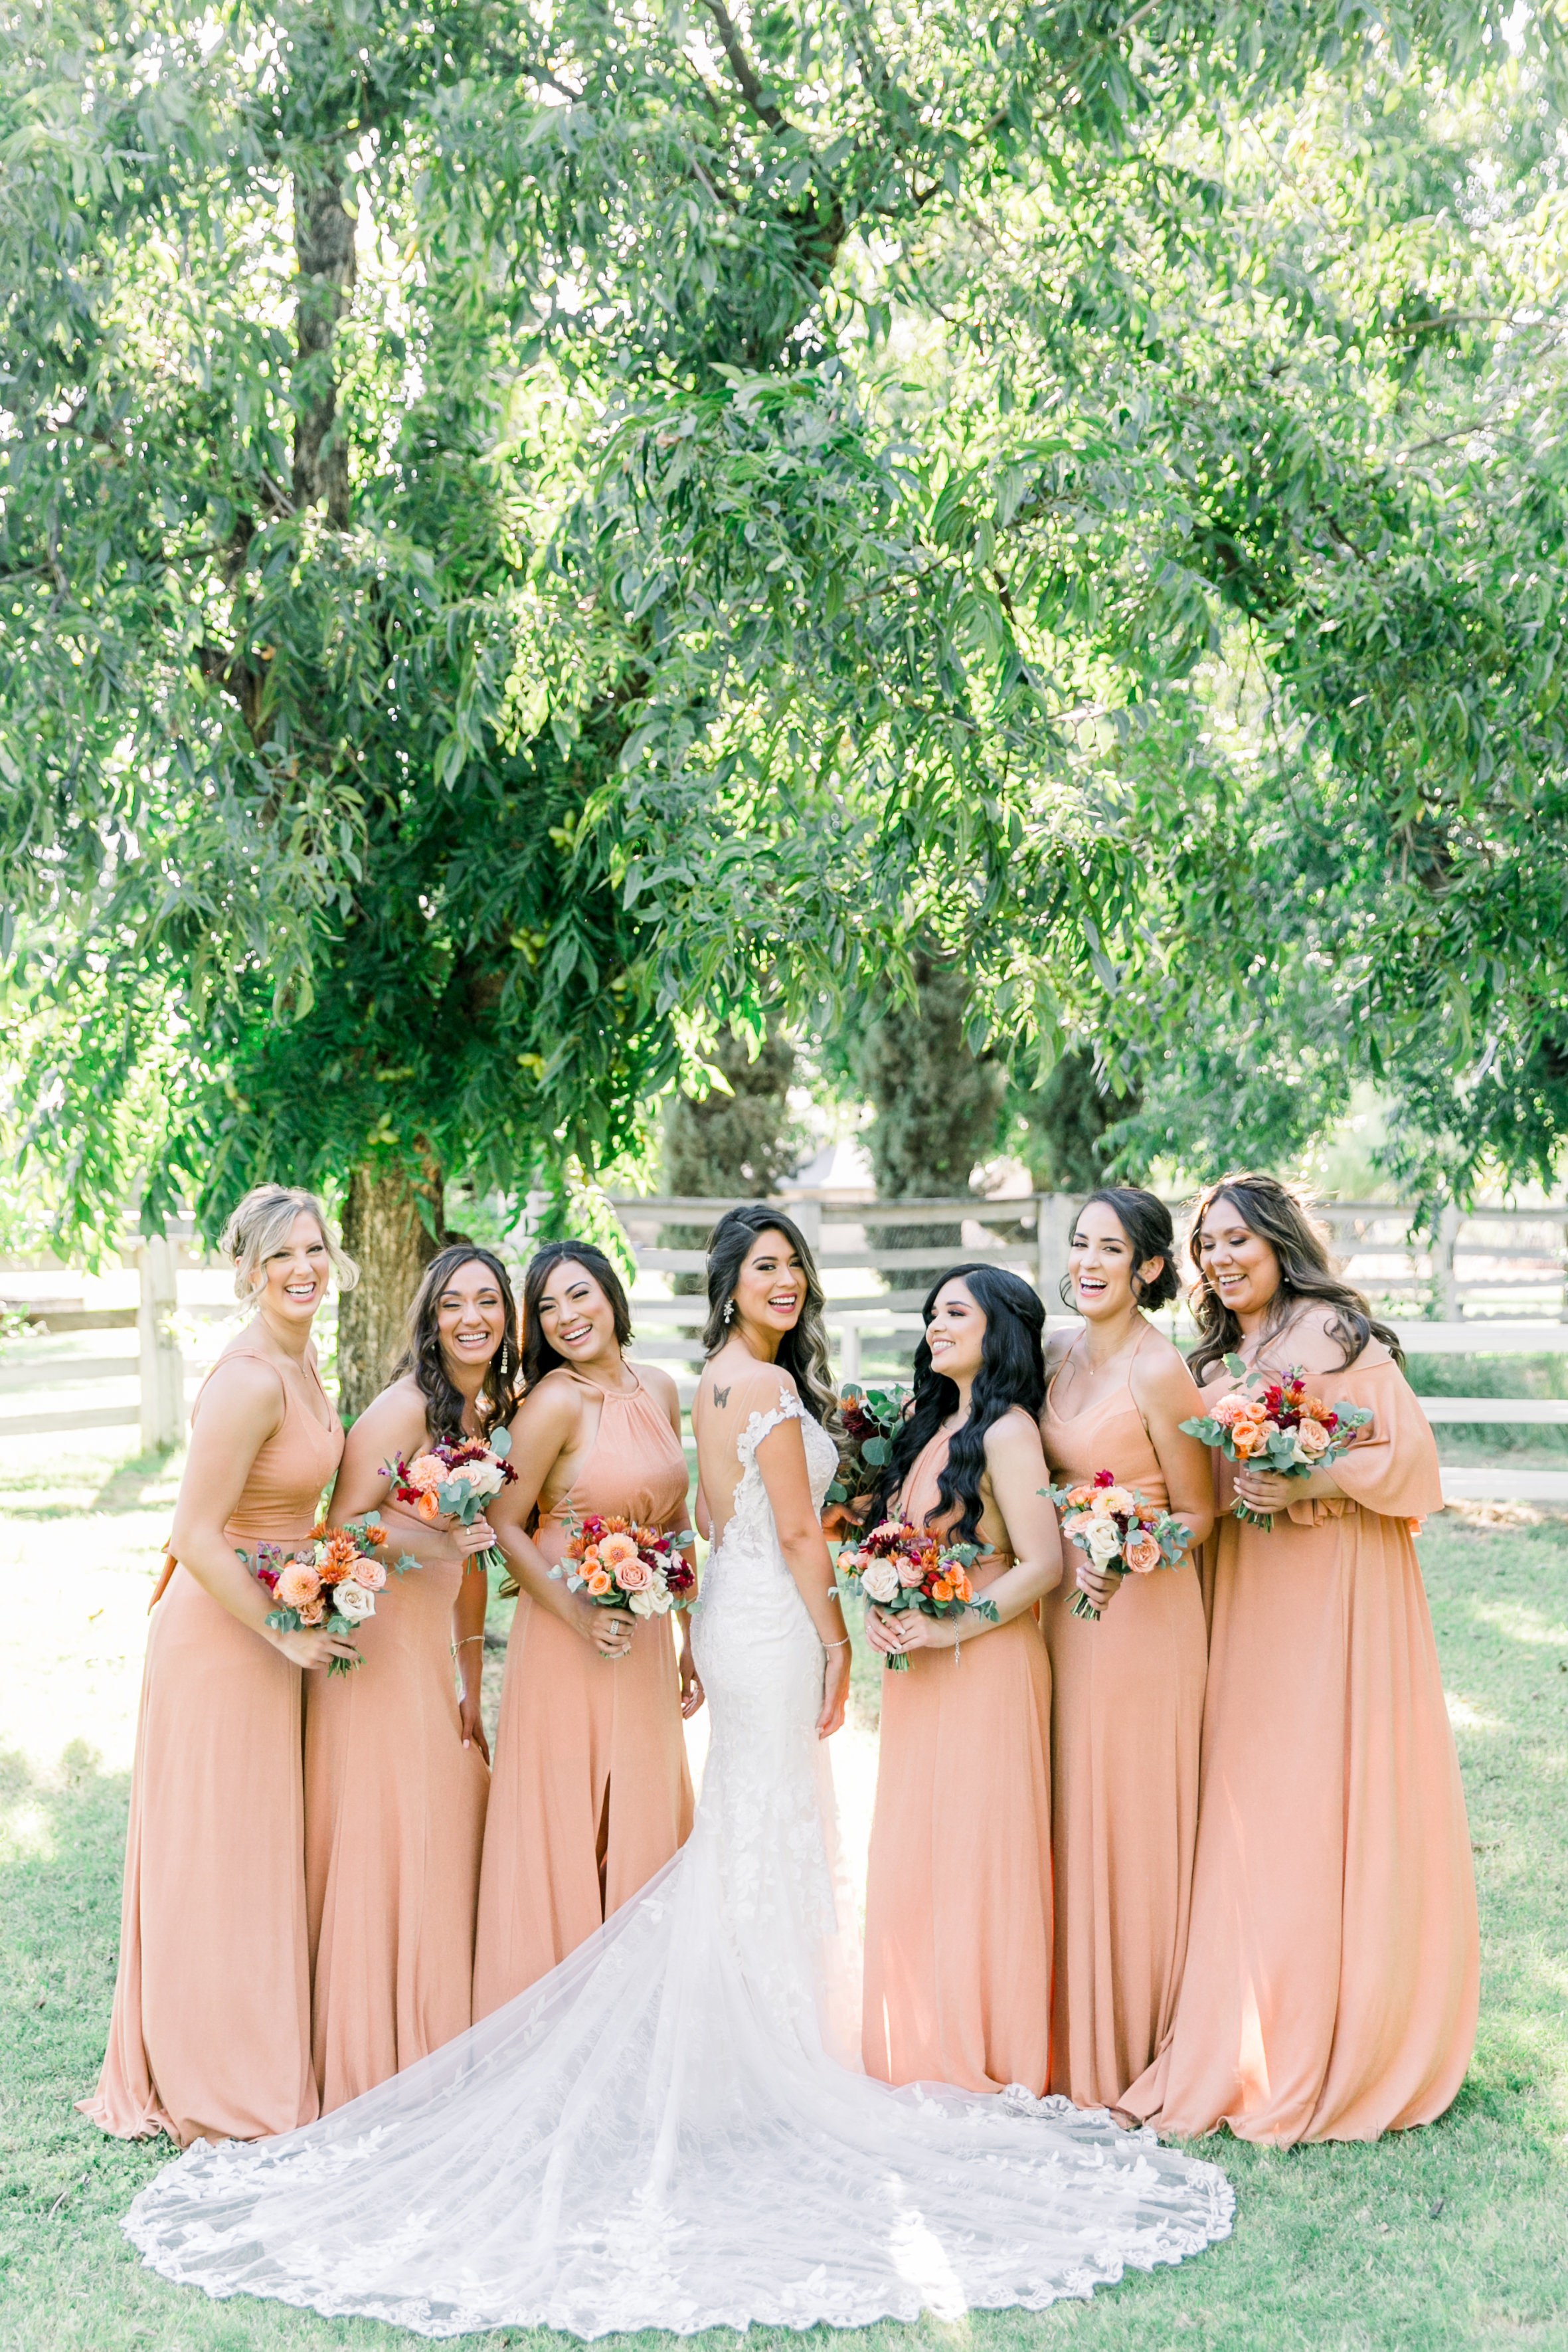 Karlie Colleen Photography - Phoenix Arizona - Farm At South Mountain Venue - Vanessa & Robert-180